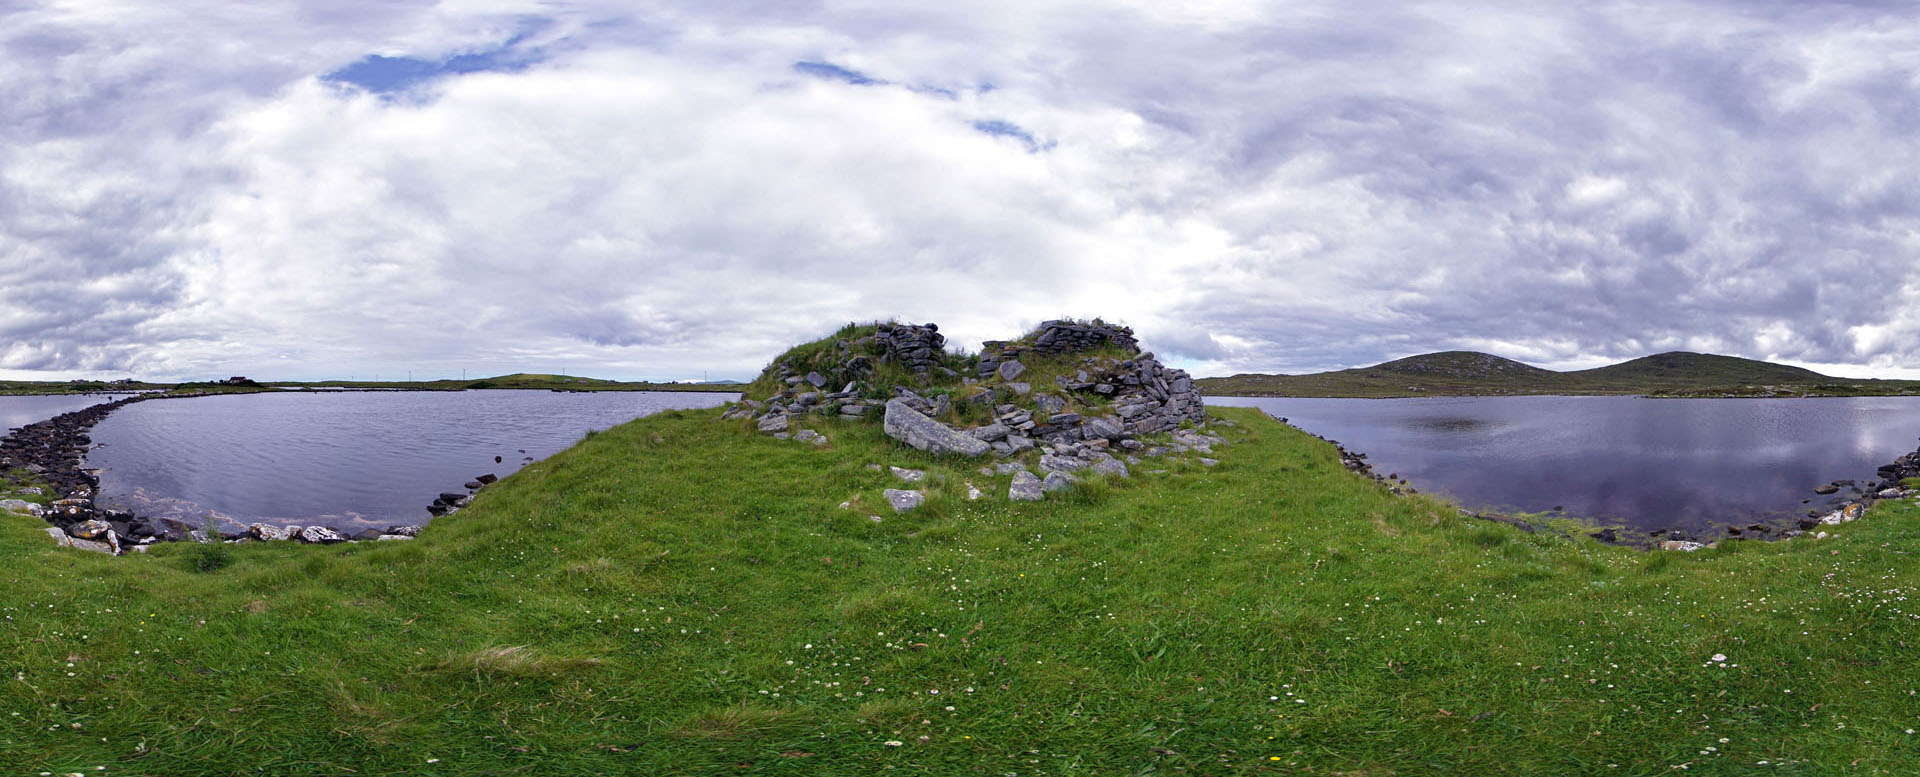 11 Dun an Sticir (dun or broch) (outside dun)